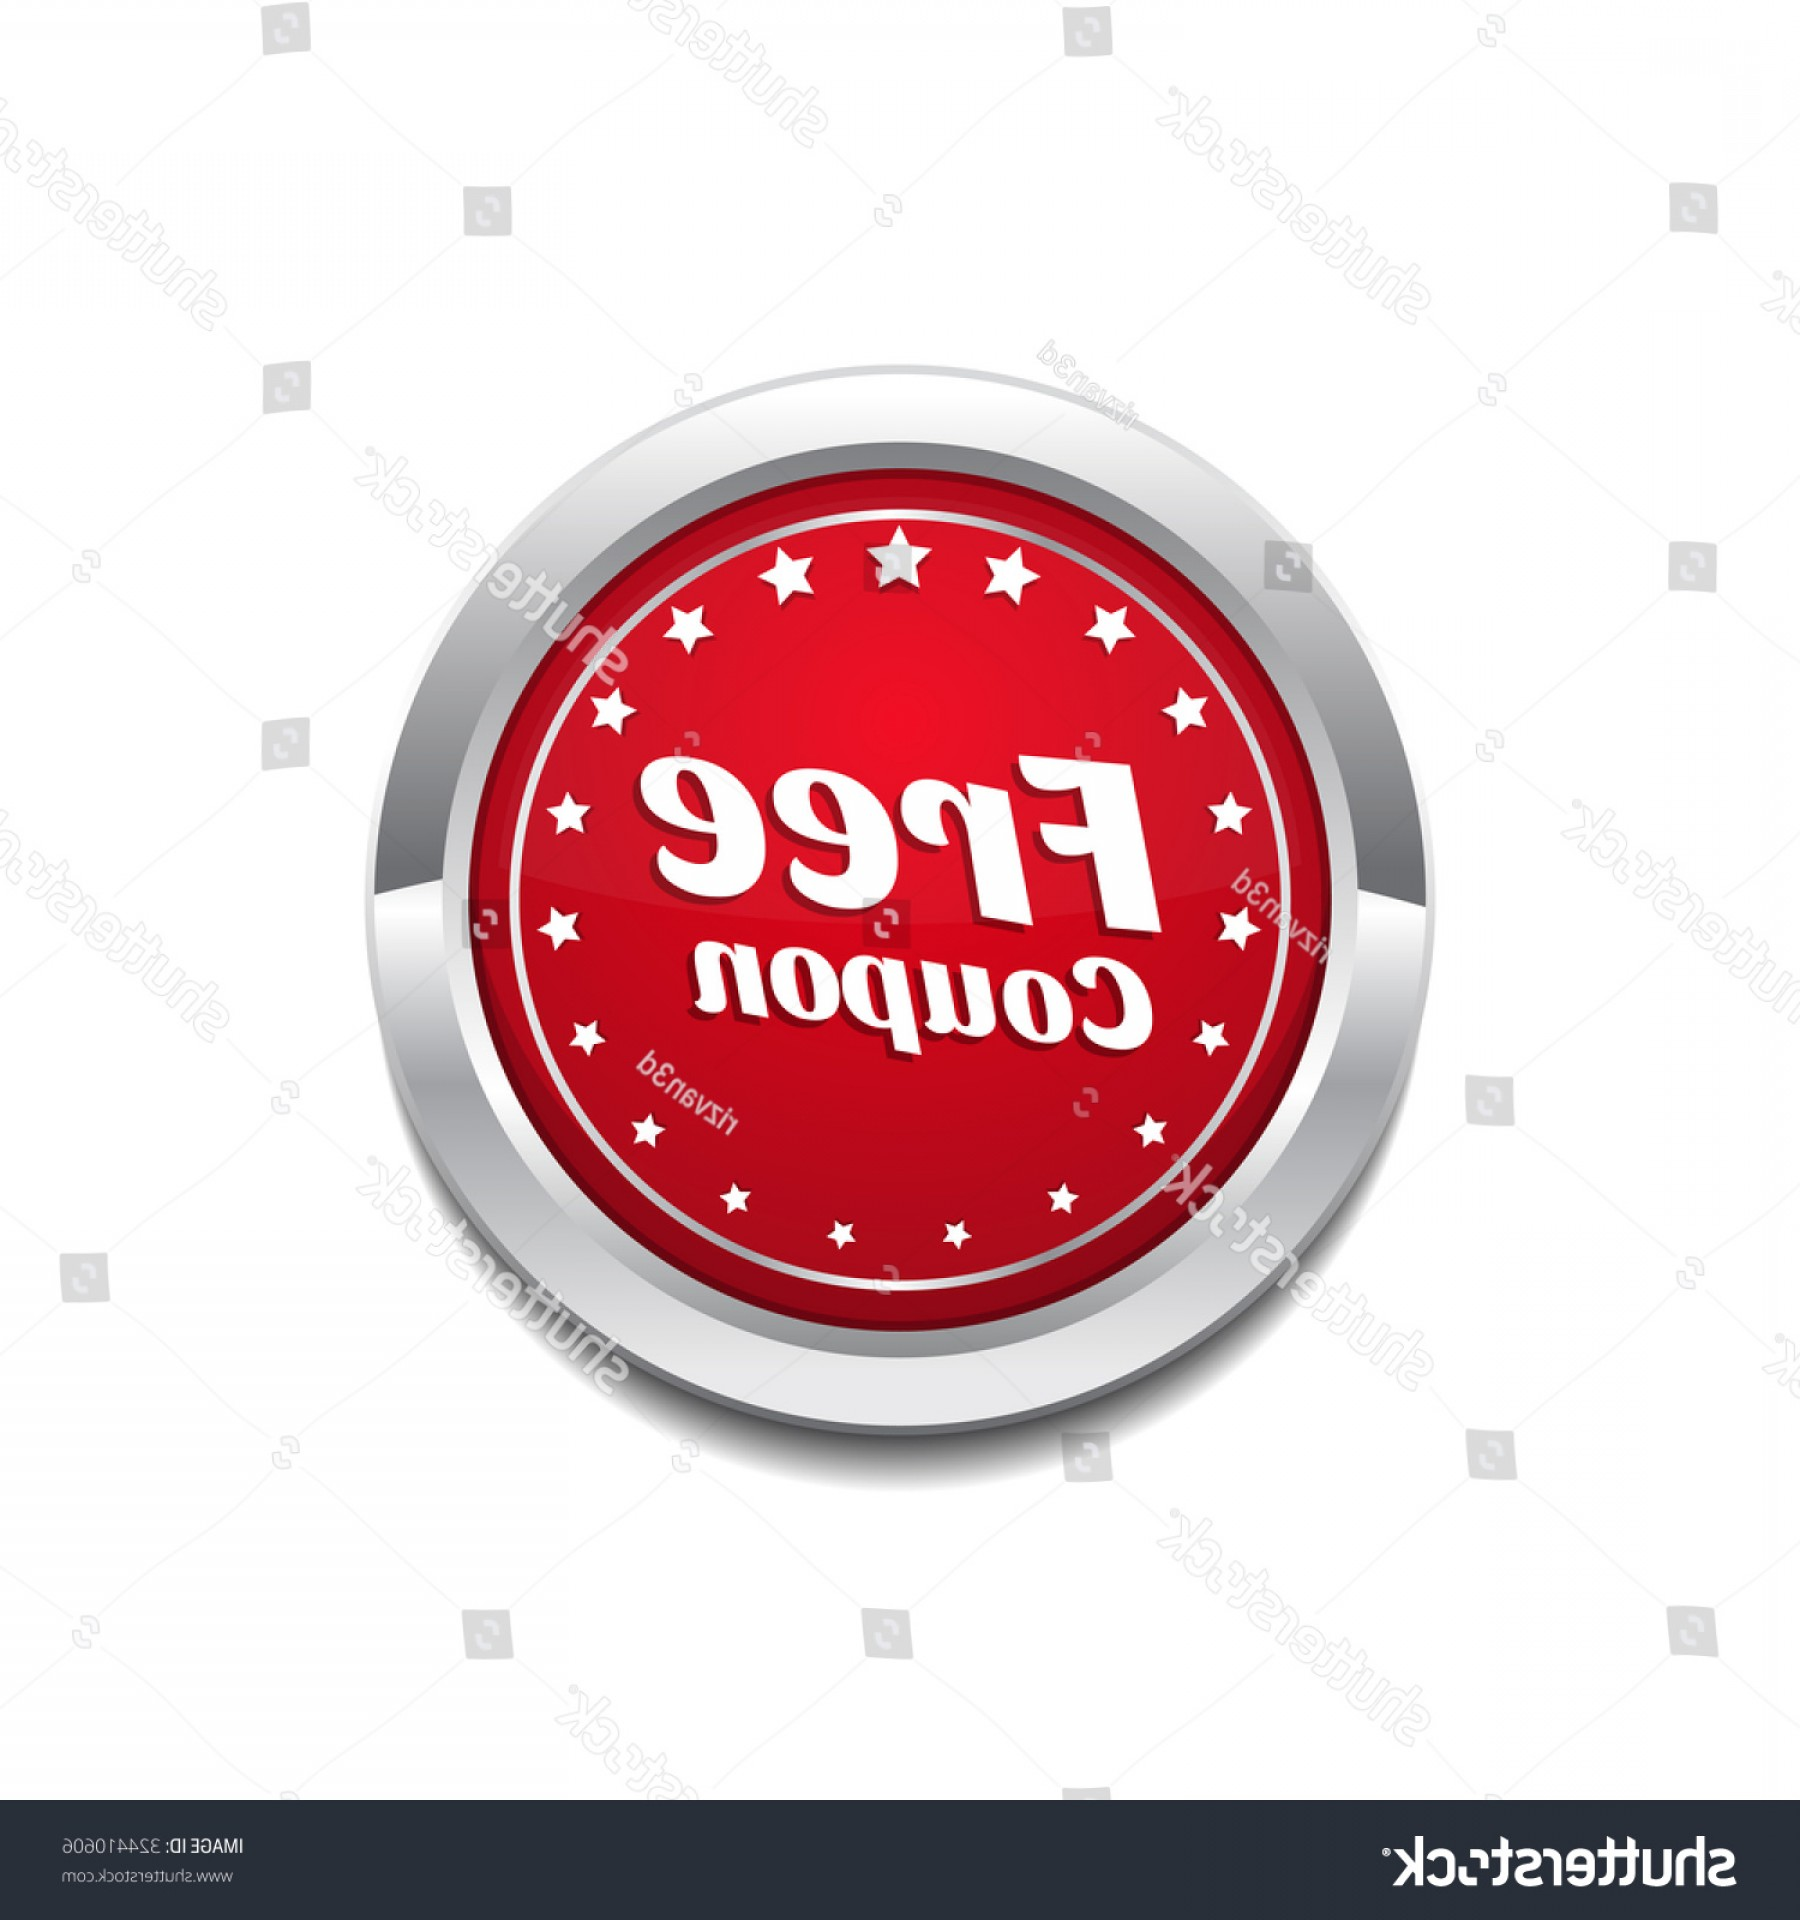 RedVector Coupon: Free Coupon Red Vector Icon Button